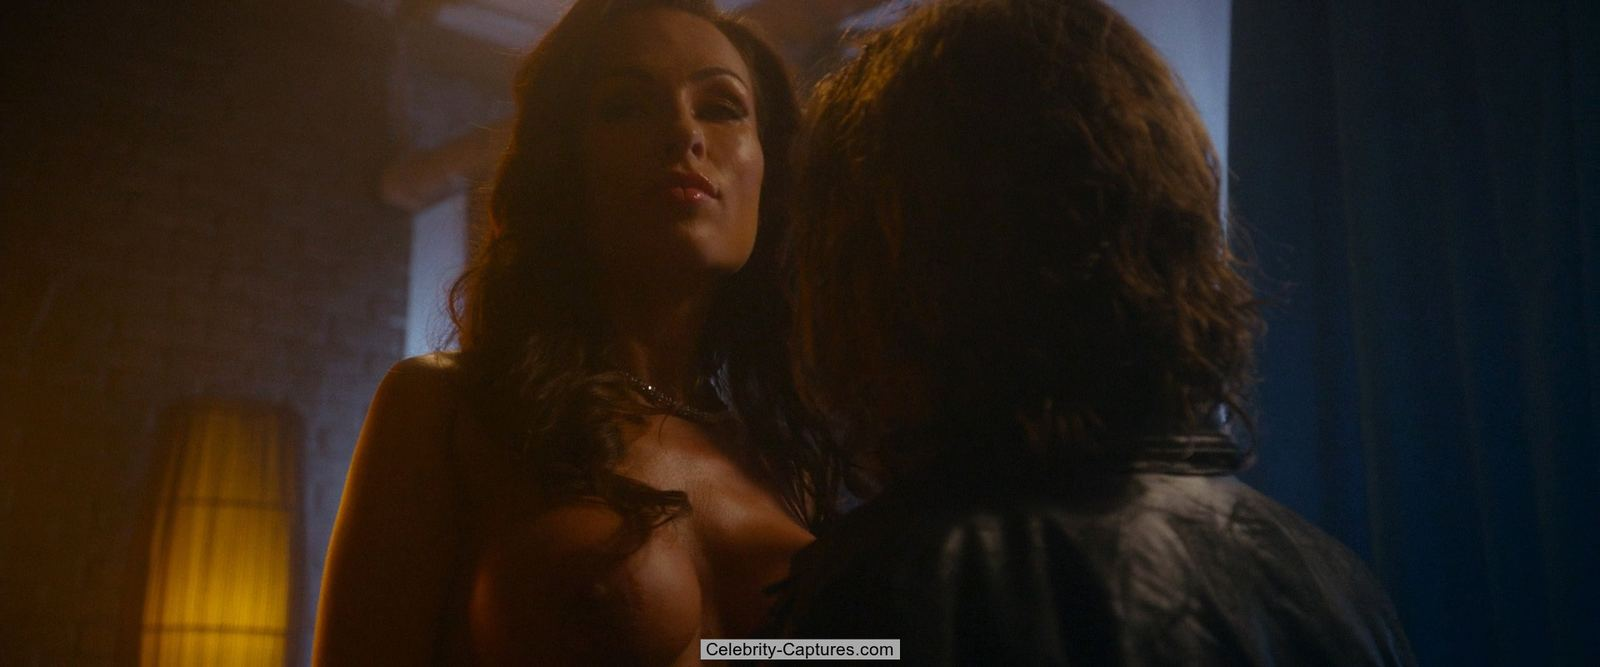 aria london exposed big boobs in vice